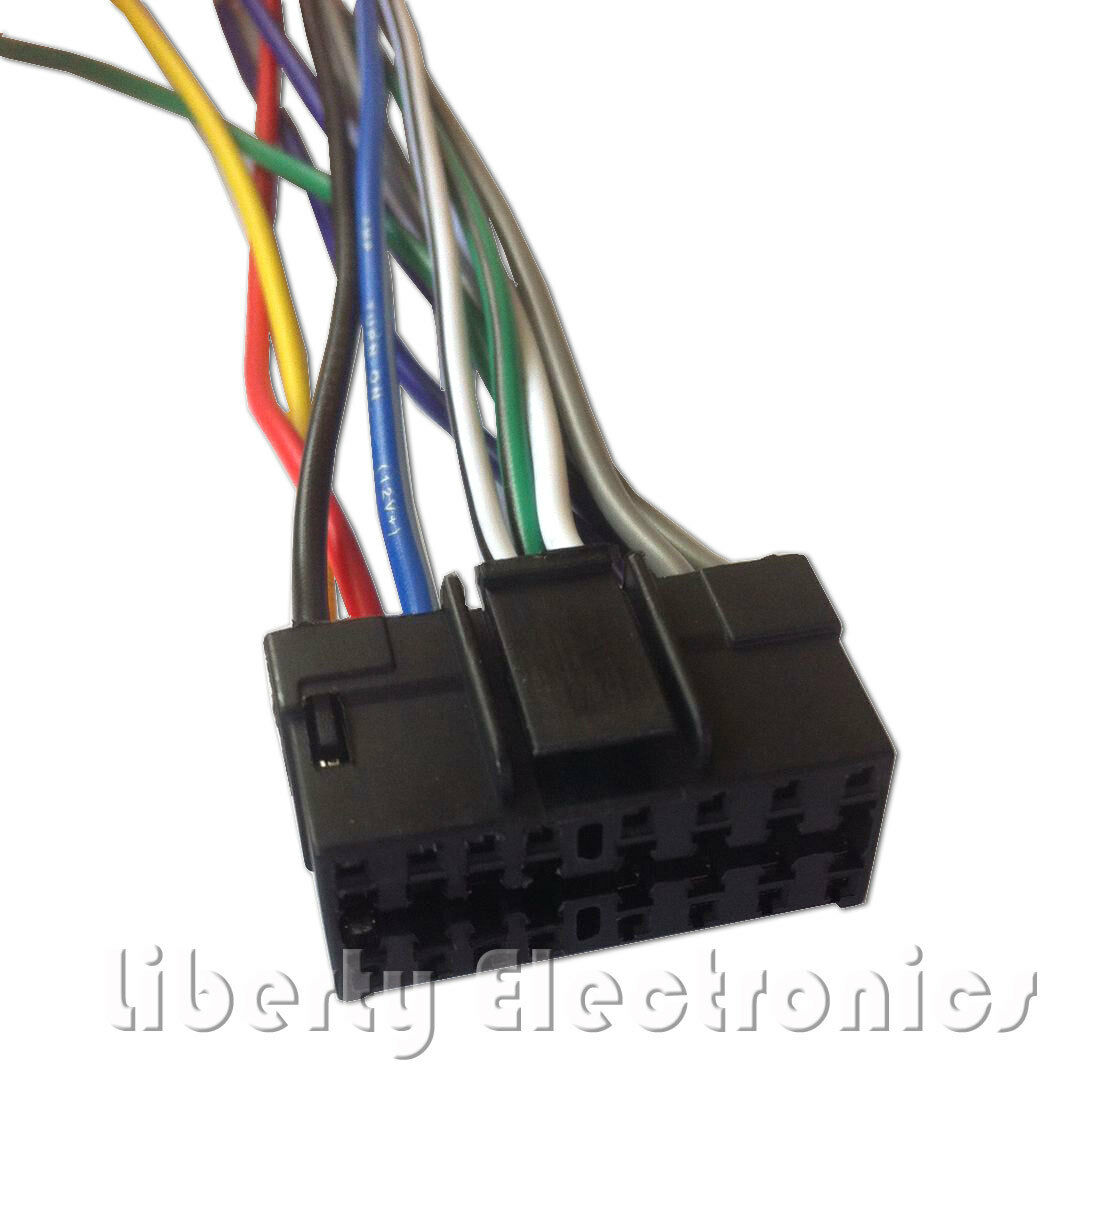 NEW WIRE HARNESS for PIONEER DEH P20 DEH P200?resize\\\\\\\=665%2C724\\\\\\\&ssl\\\\\\\=1 deh 800prs wire diagram,prs \u2022 j squared co pioneer premier wiring harness at honlapkeszites.co